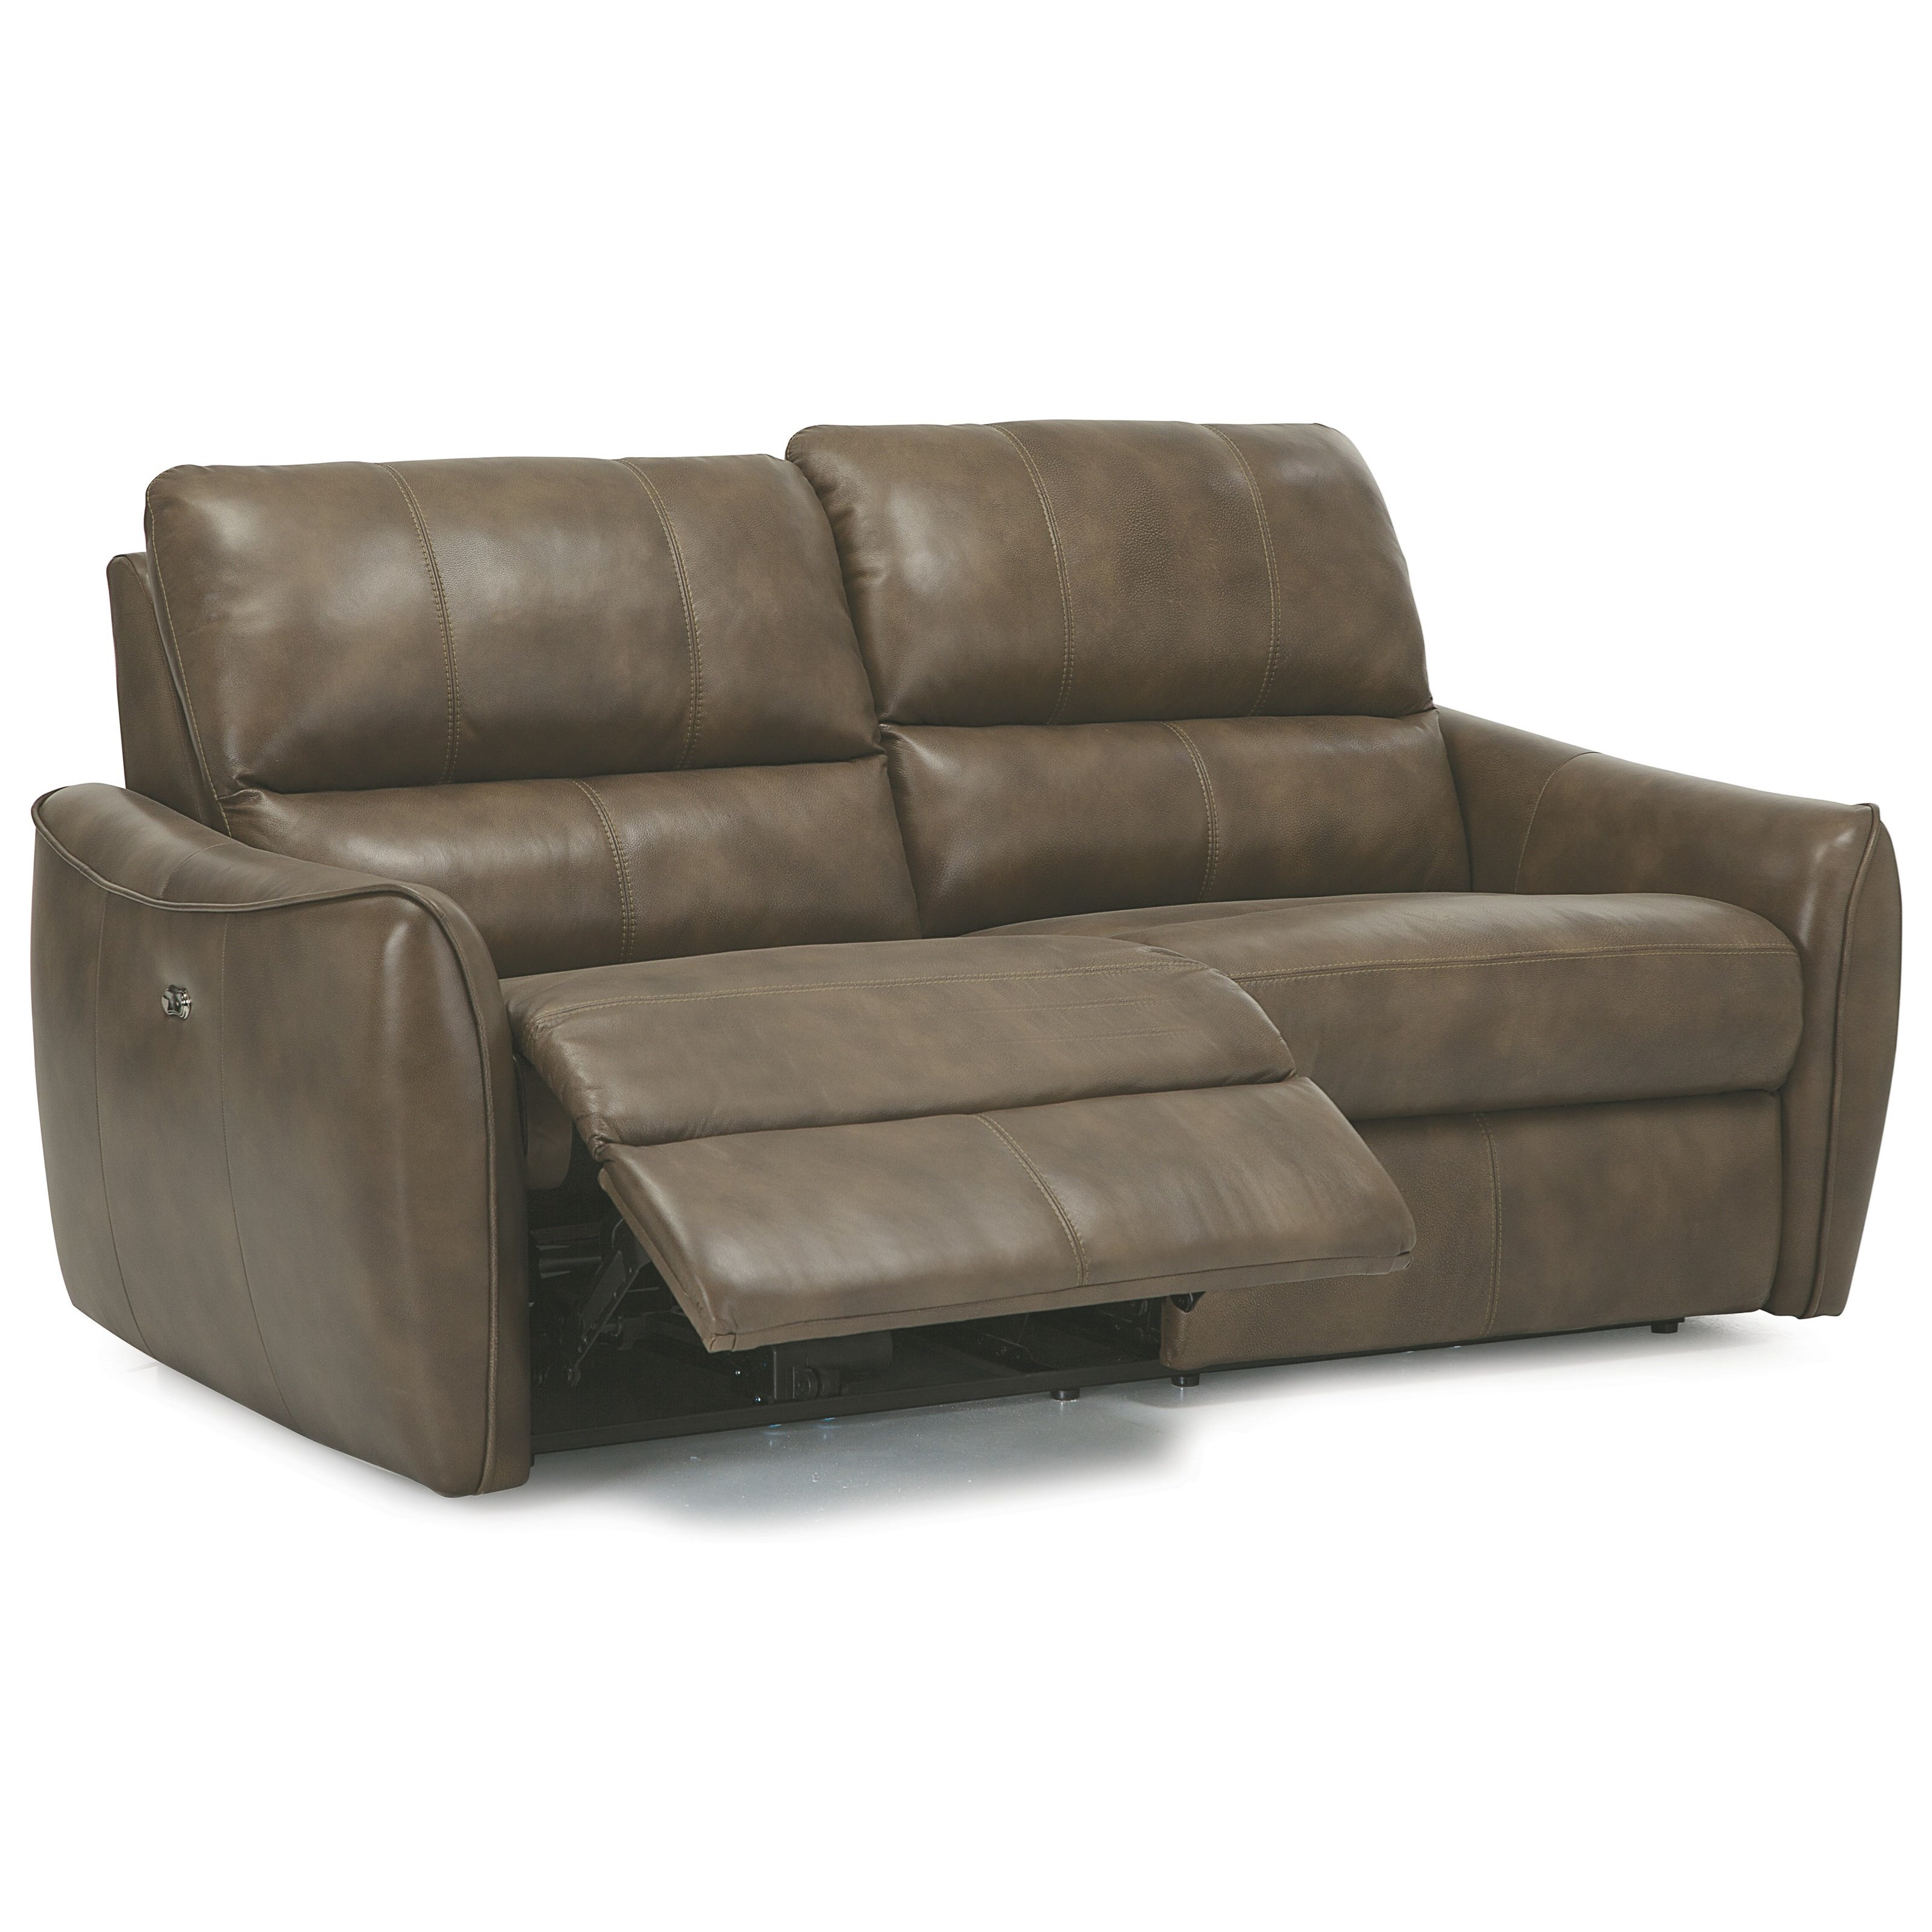 Arlo Power Sofa by Palliser at Prime Brothers Furniture